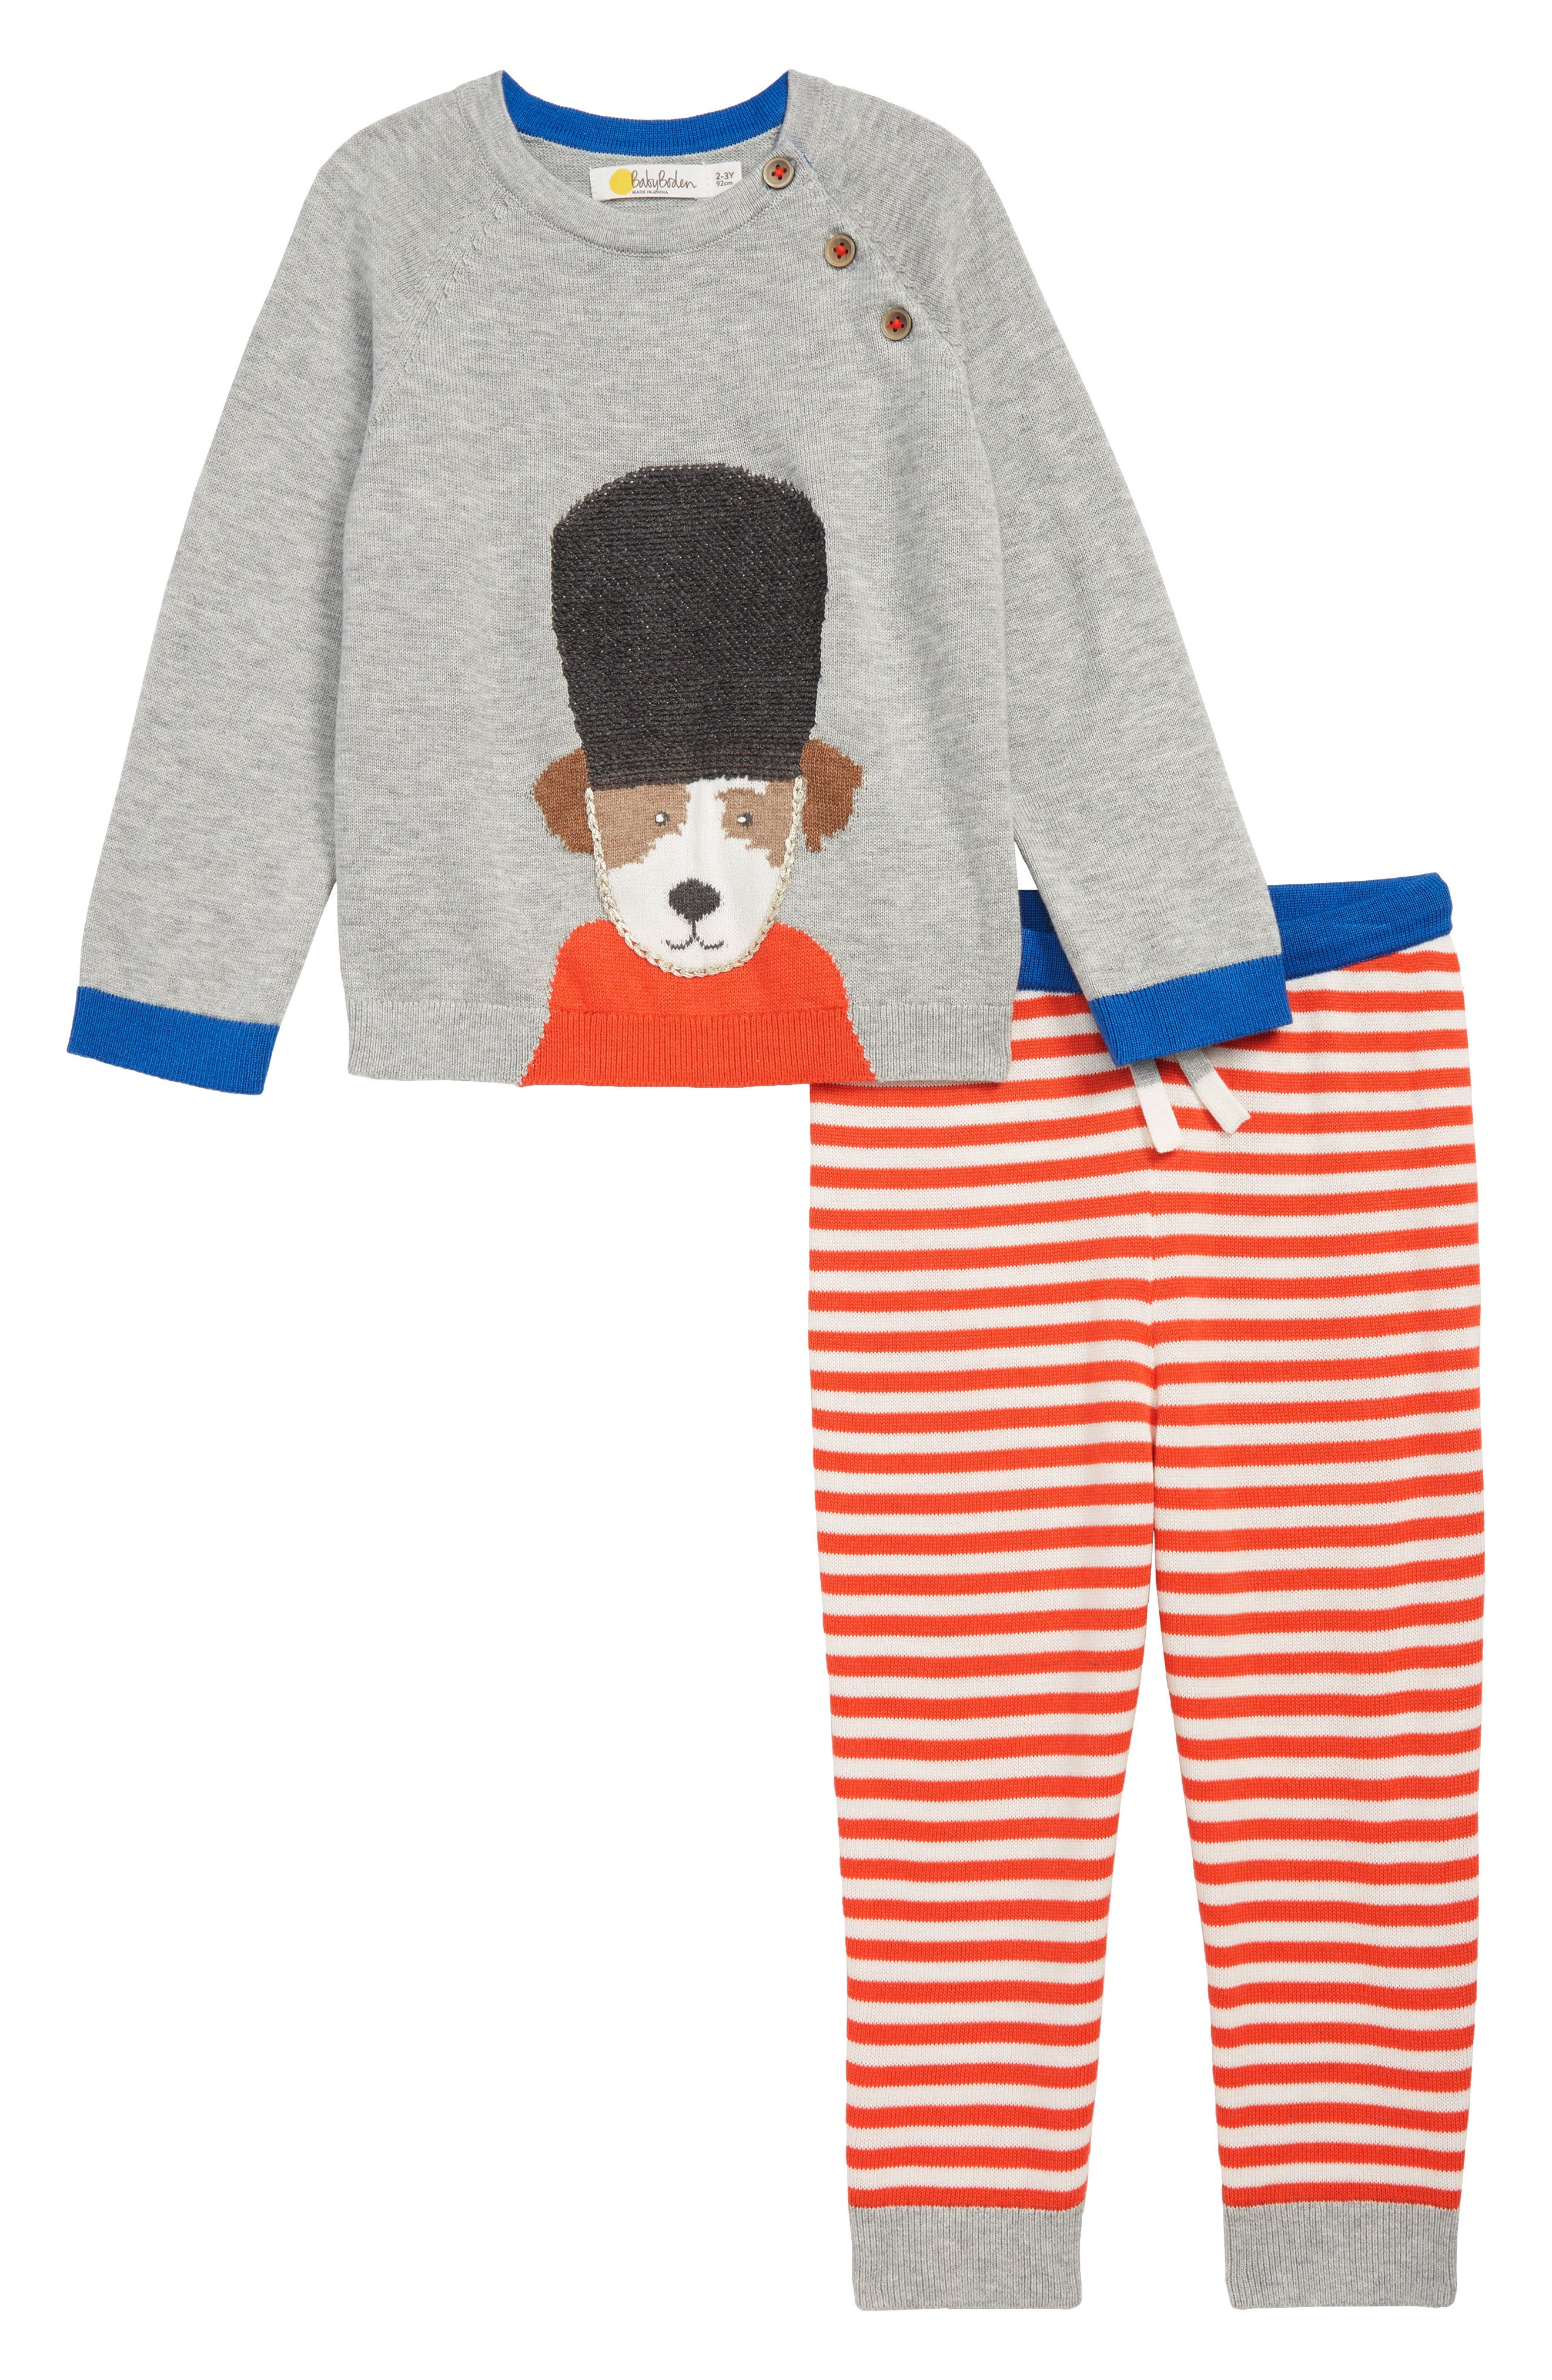 Soldier-On Sweater & Pants Set,                             Main thumbnail 1, color,                             GRY GREY MARL SOLDIER SPROUT